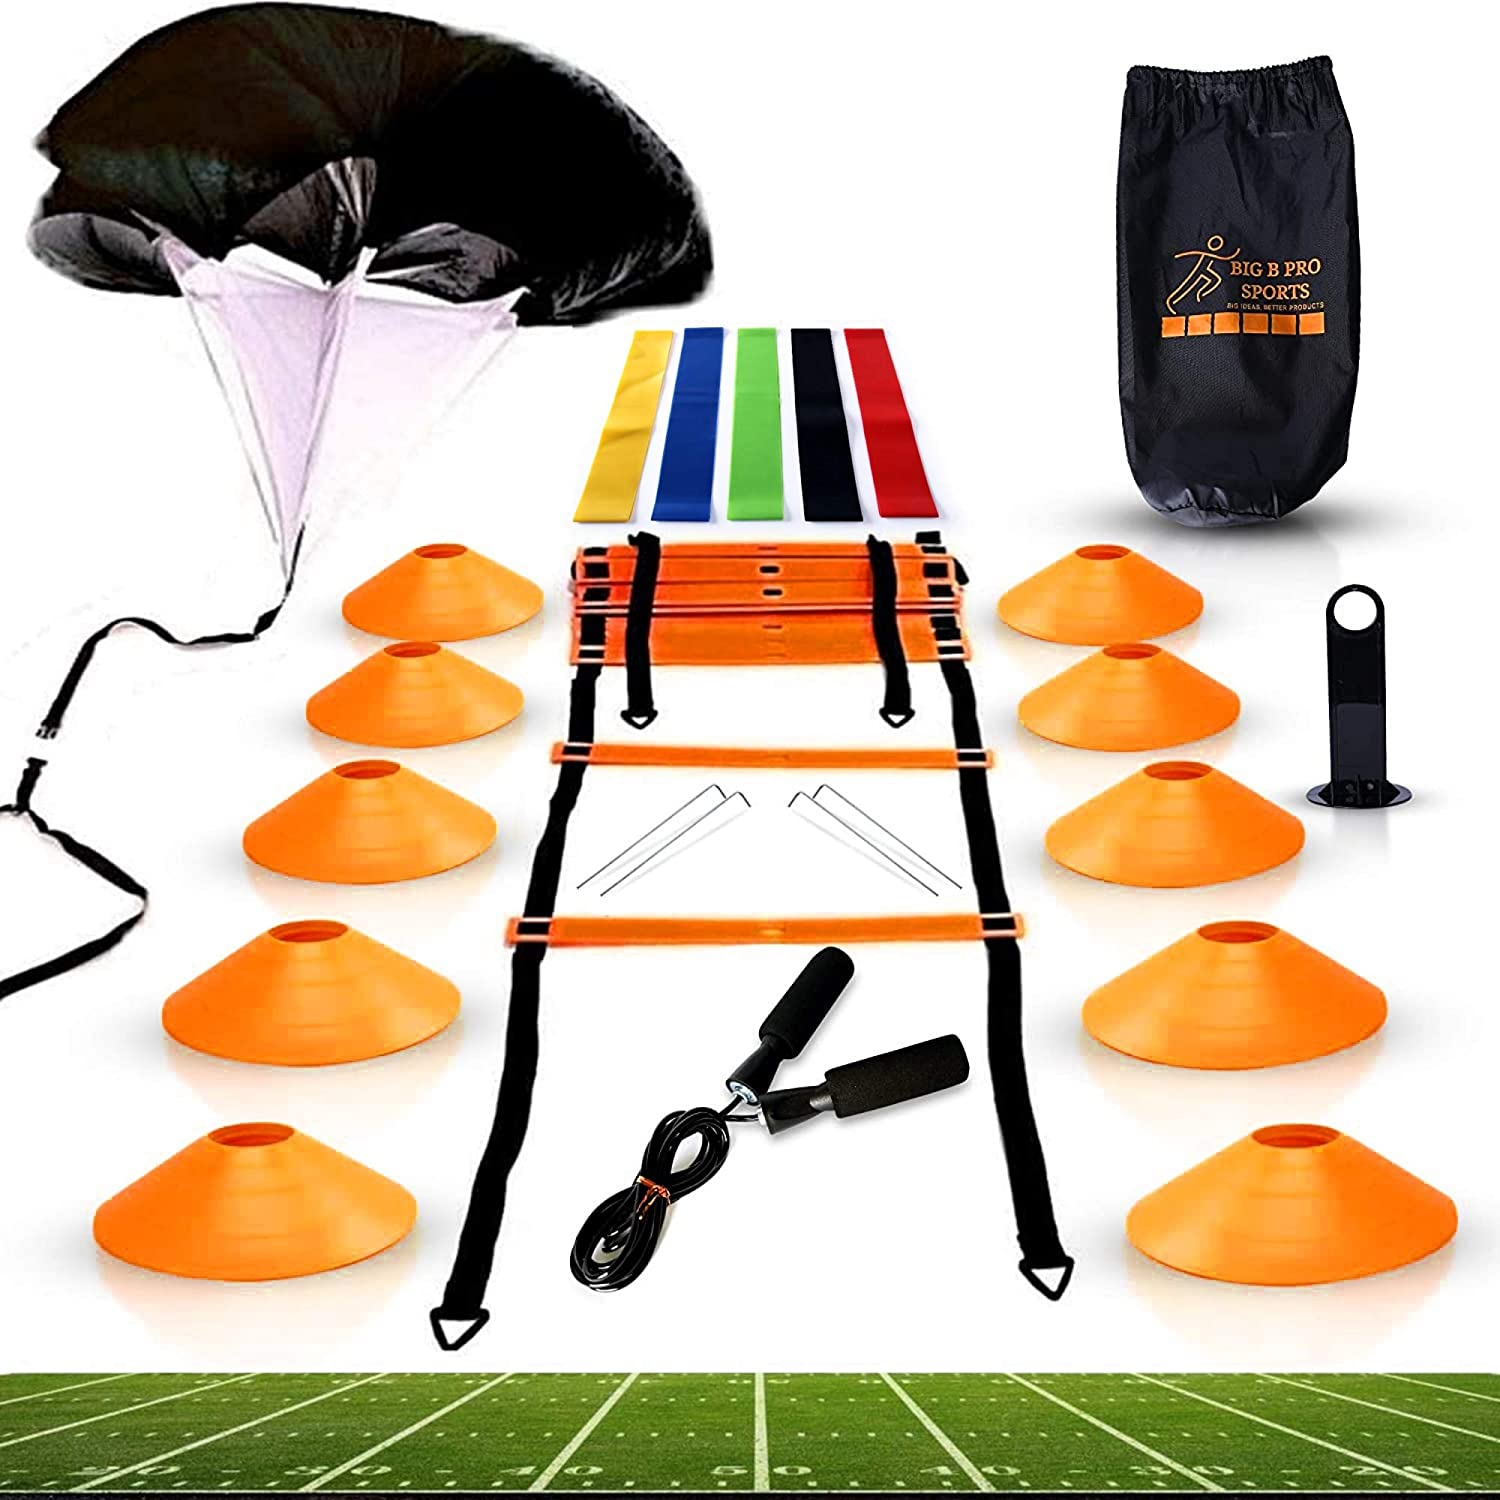 Big B Pro Sports Speed Agility Training Set - Includes Ladder, 10 Cones with Holder, Running Parachute, Jump Rope, Resistance Ba